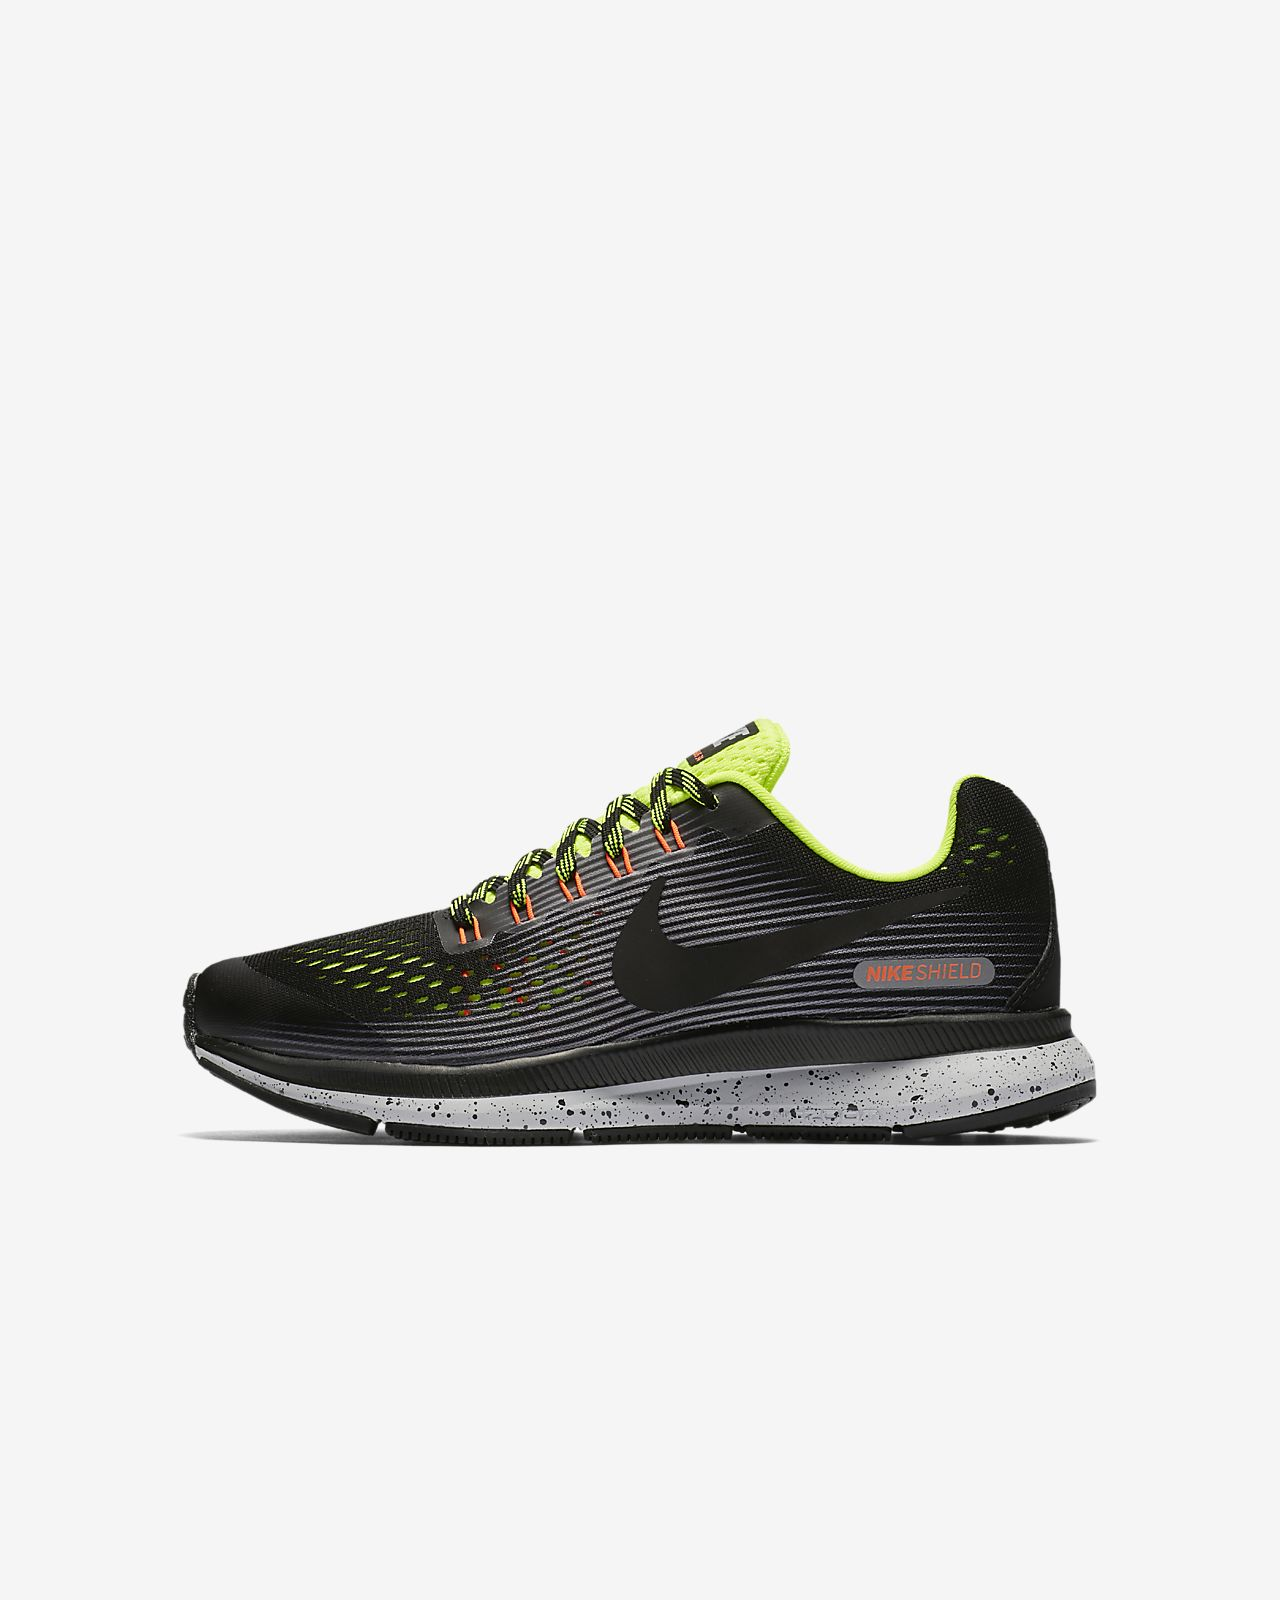 nike pegasus men's 34 nz